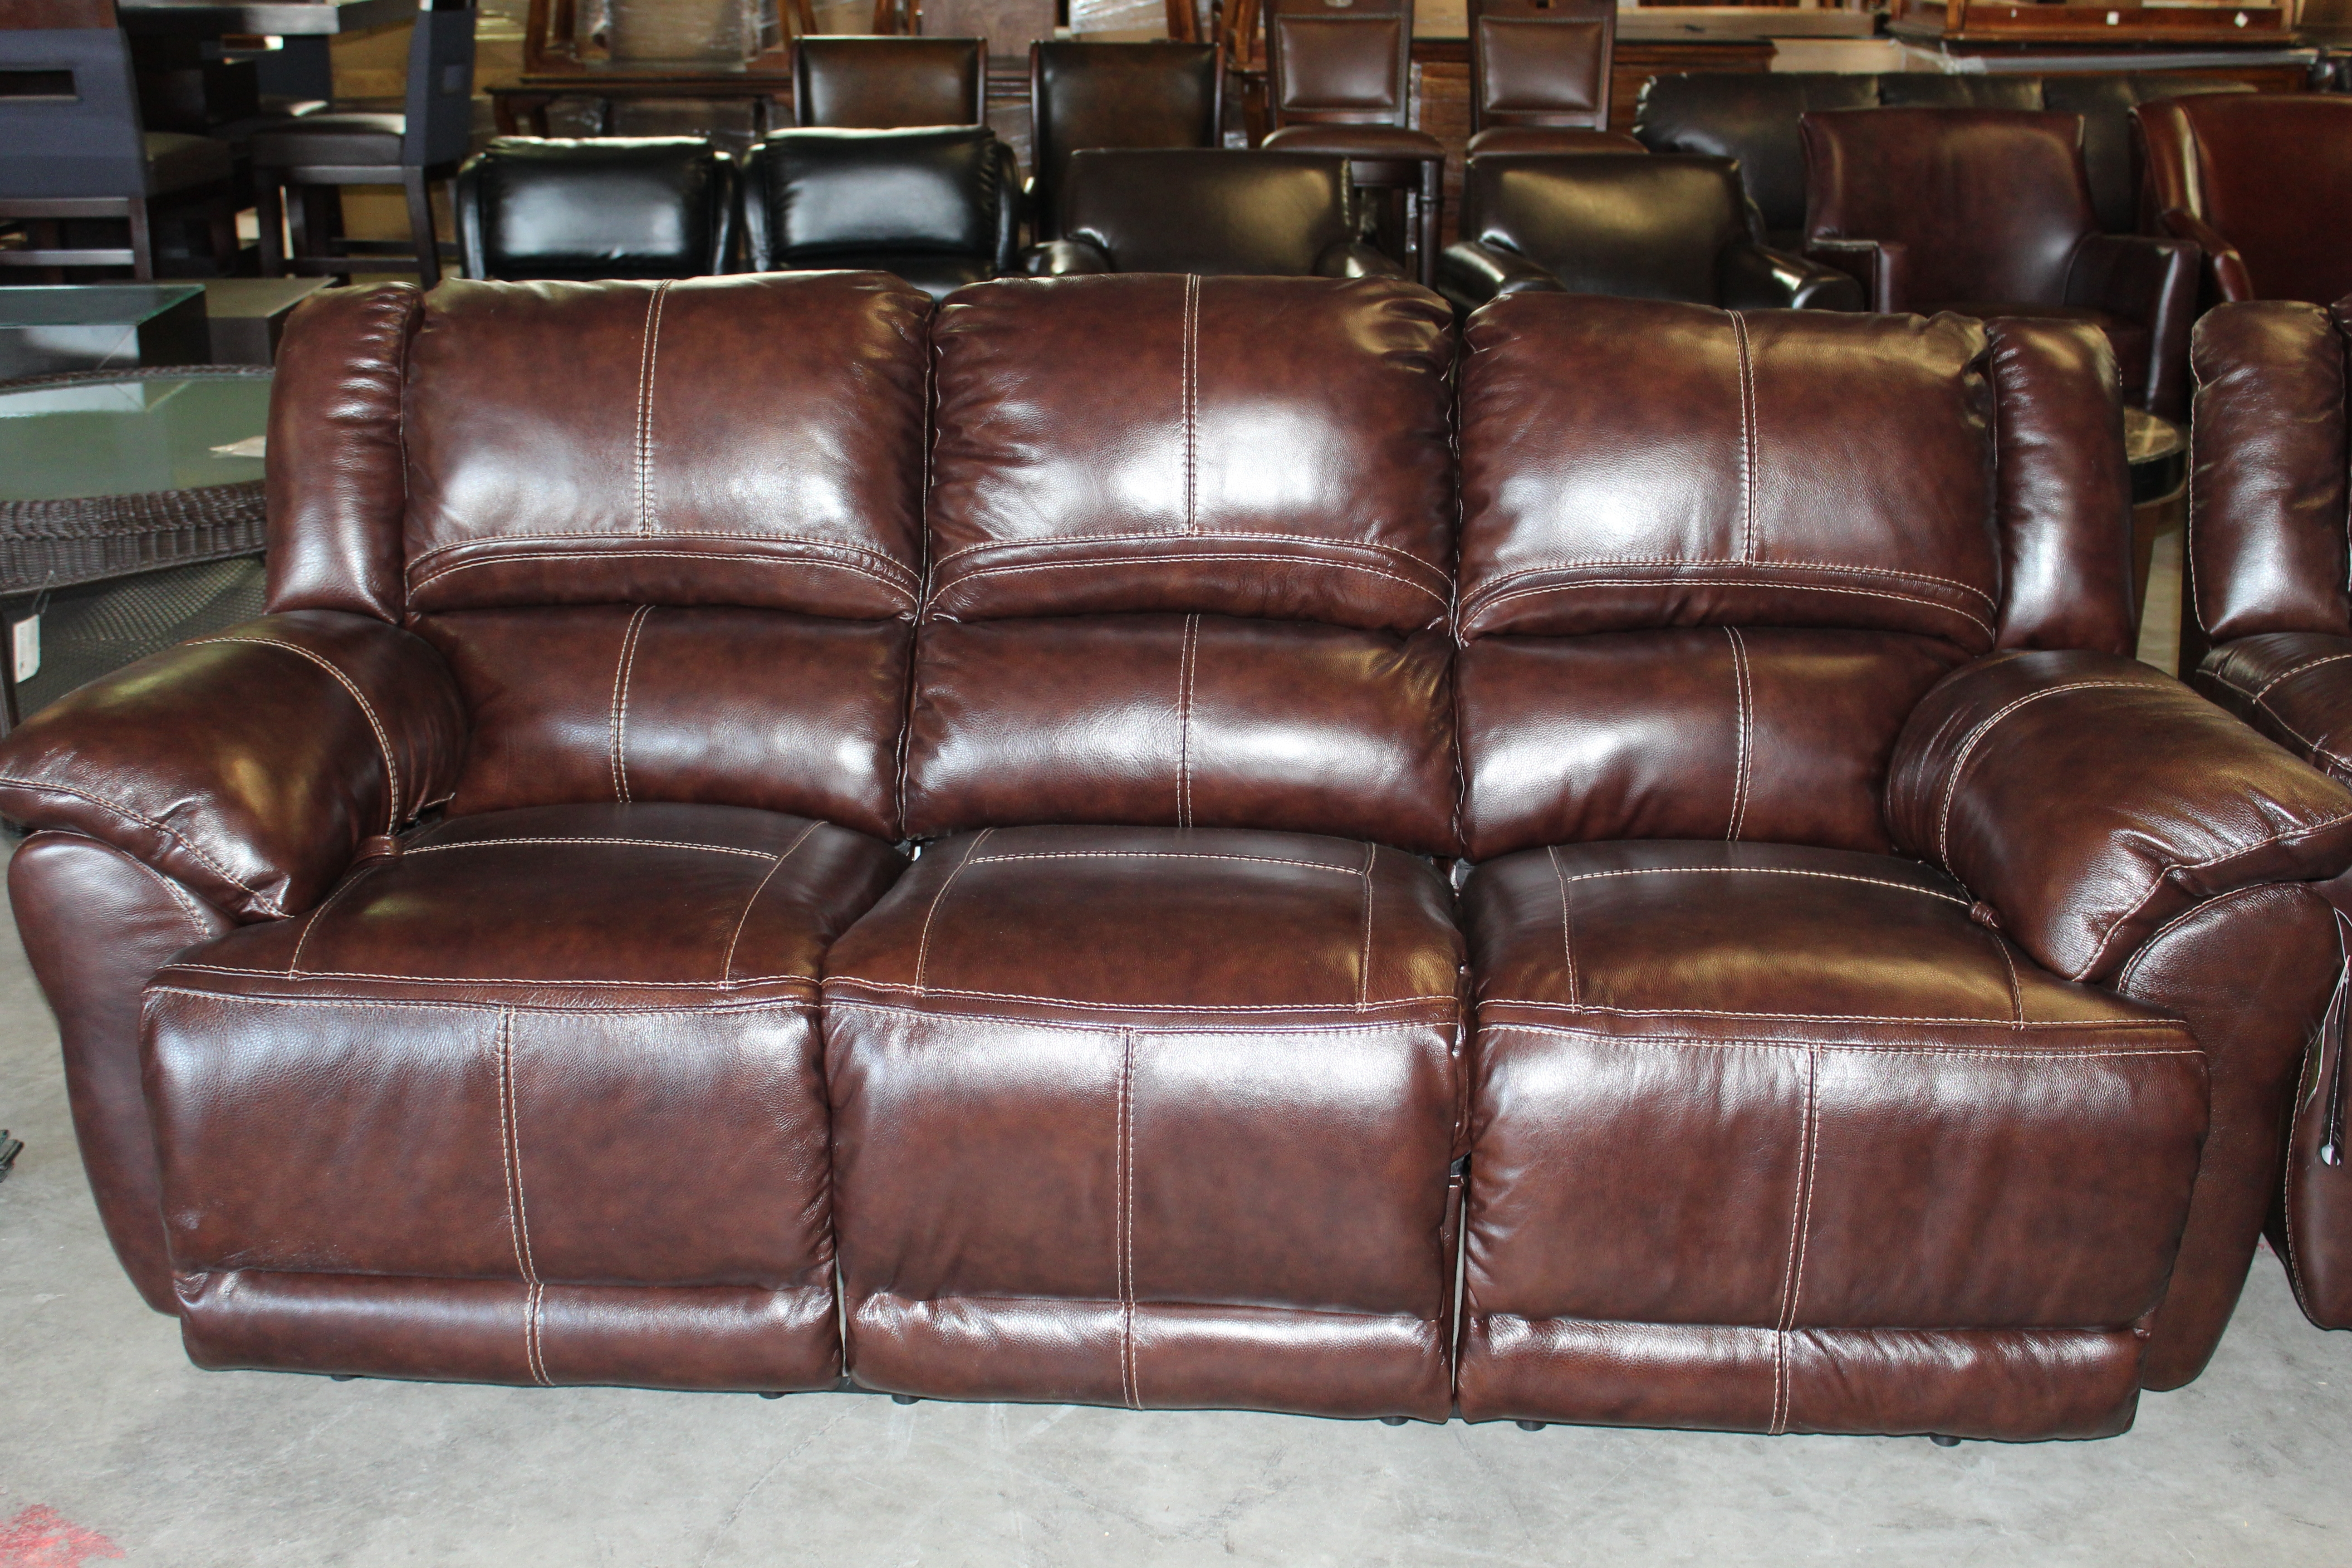 Used Furniture With Regard To Popular Leather Lounge Sofas (View 8 of 20)